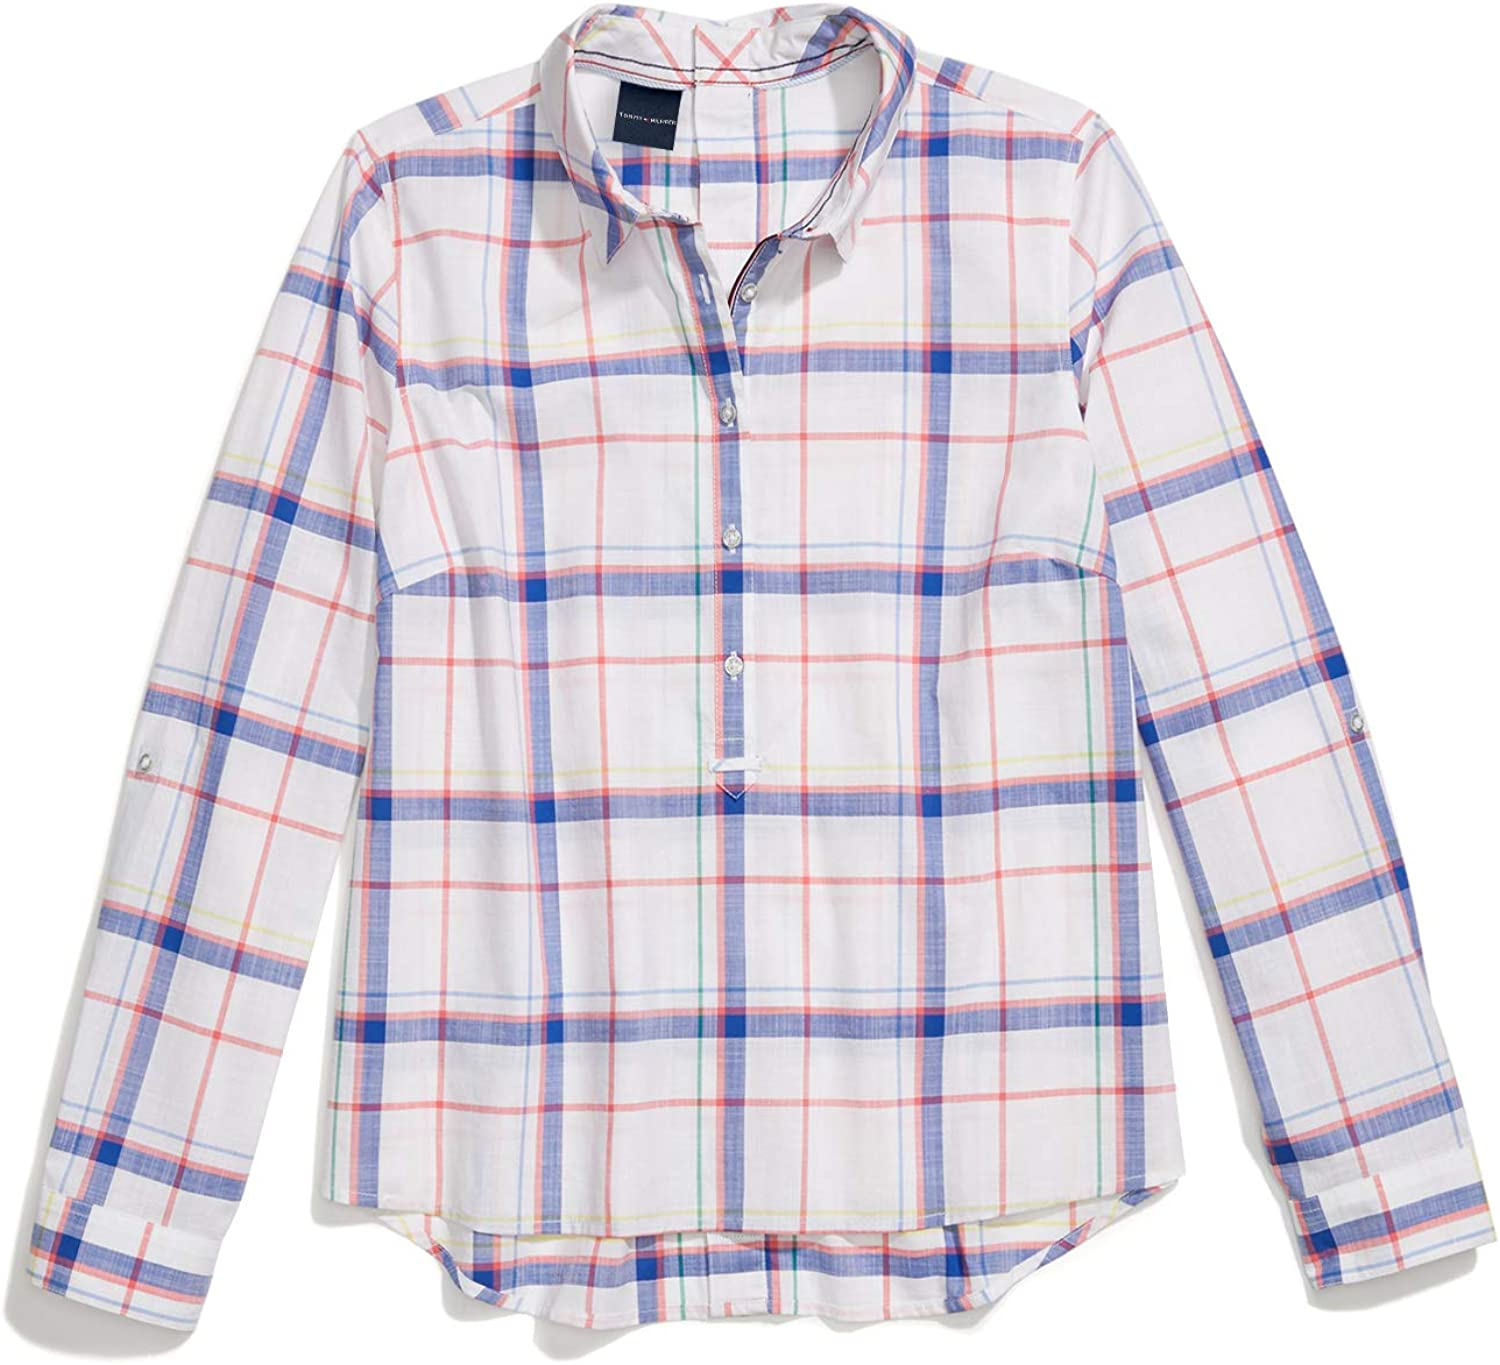 Tommy Max 47% OFF Hilfiger Women's Adaptive Seated Magnetic Button Fit Shirt New product